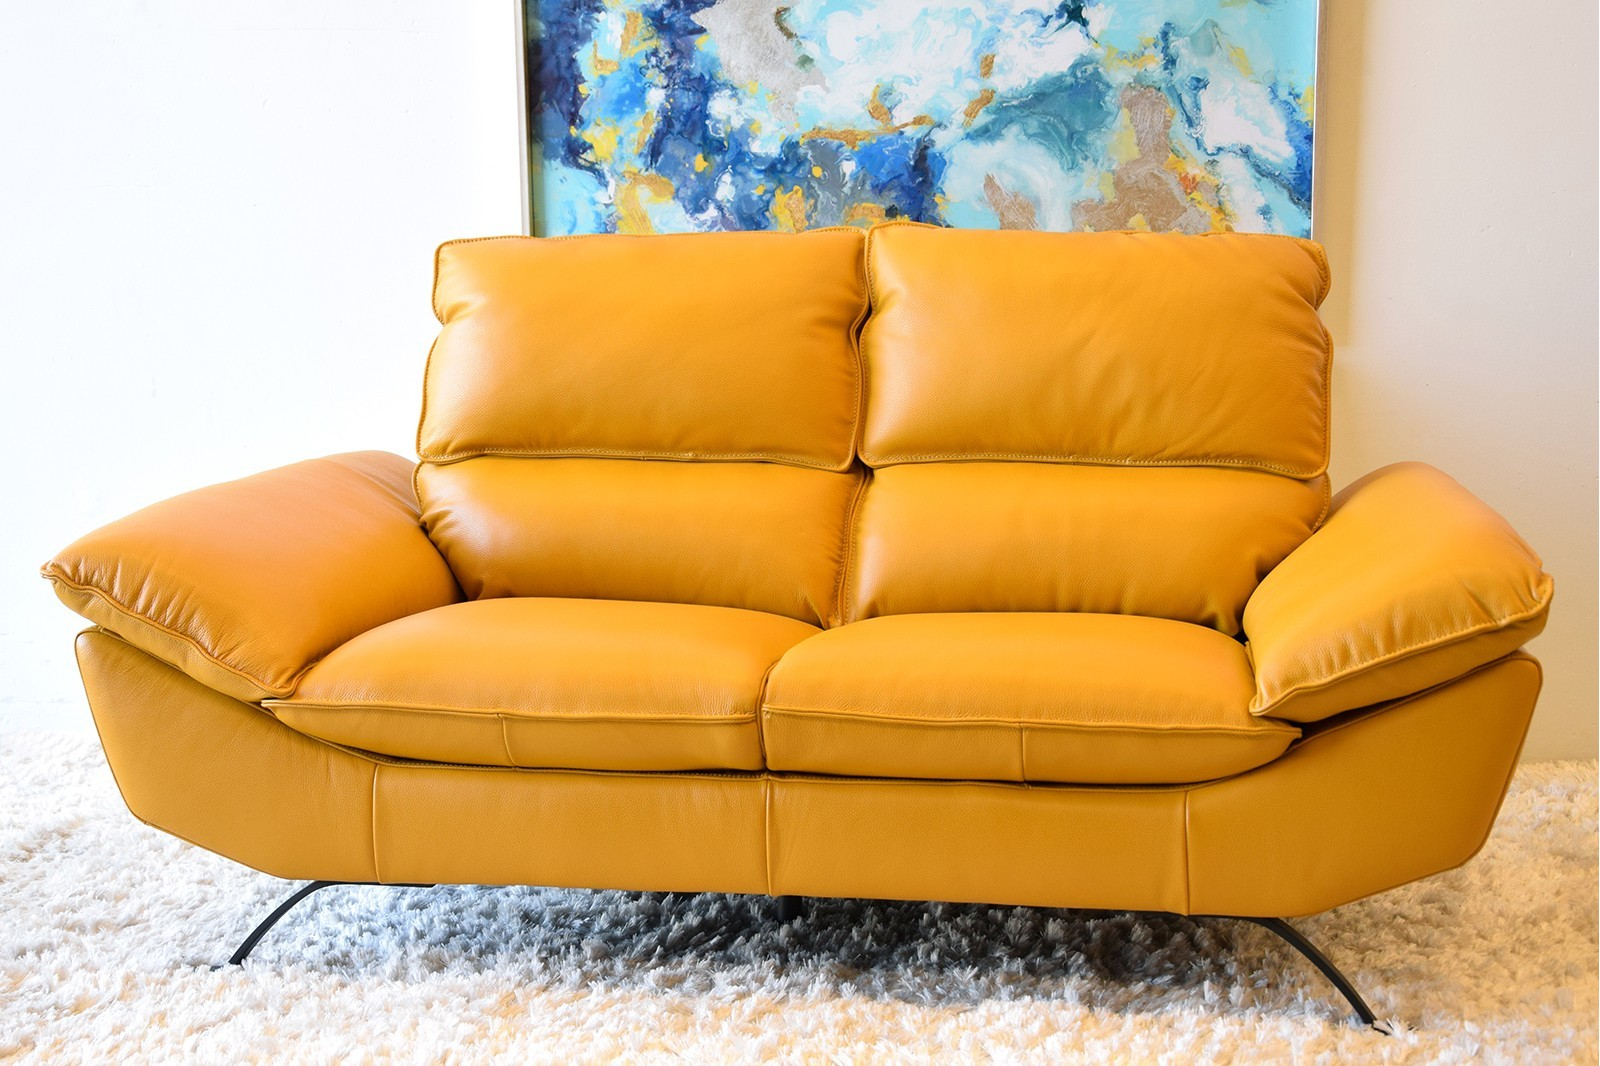 LEATHER SOFA IN MUSTARD COLOR . 2 SEATER